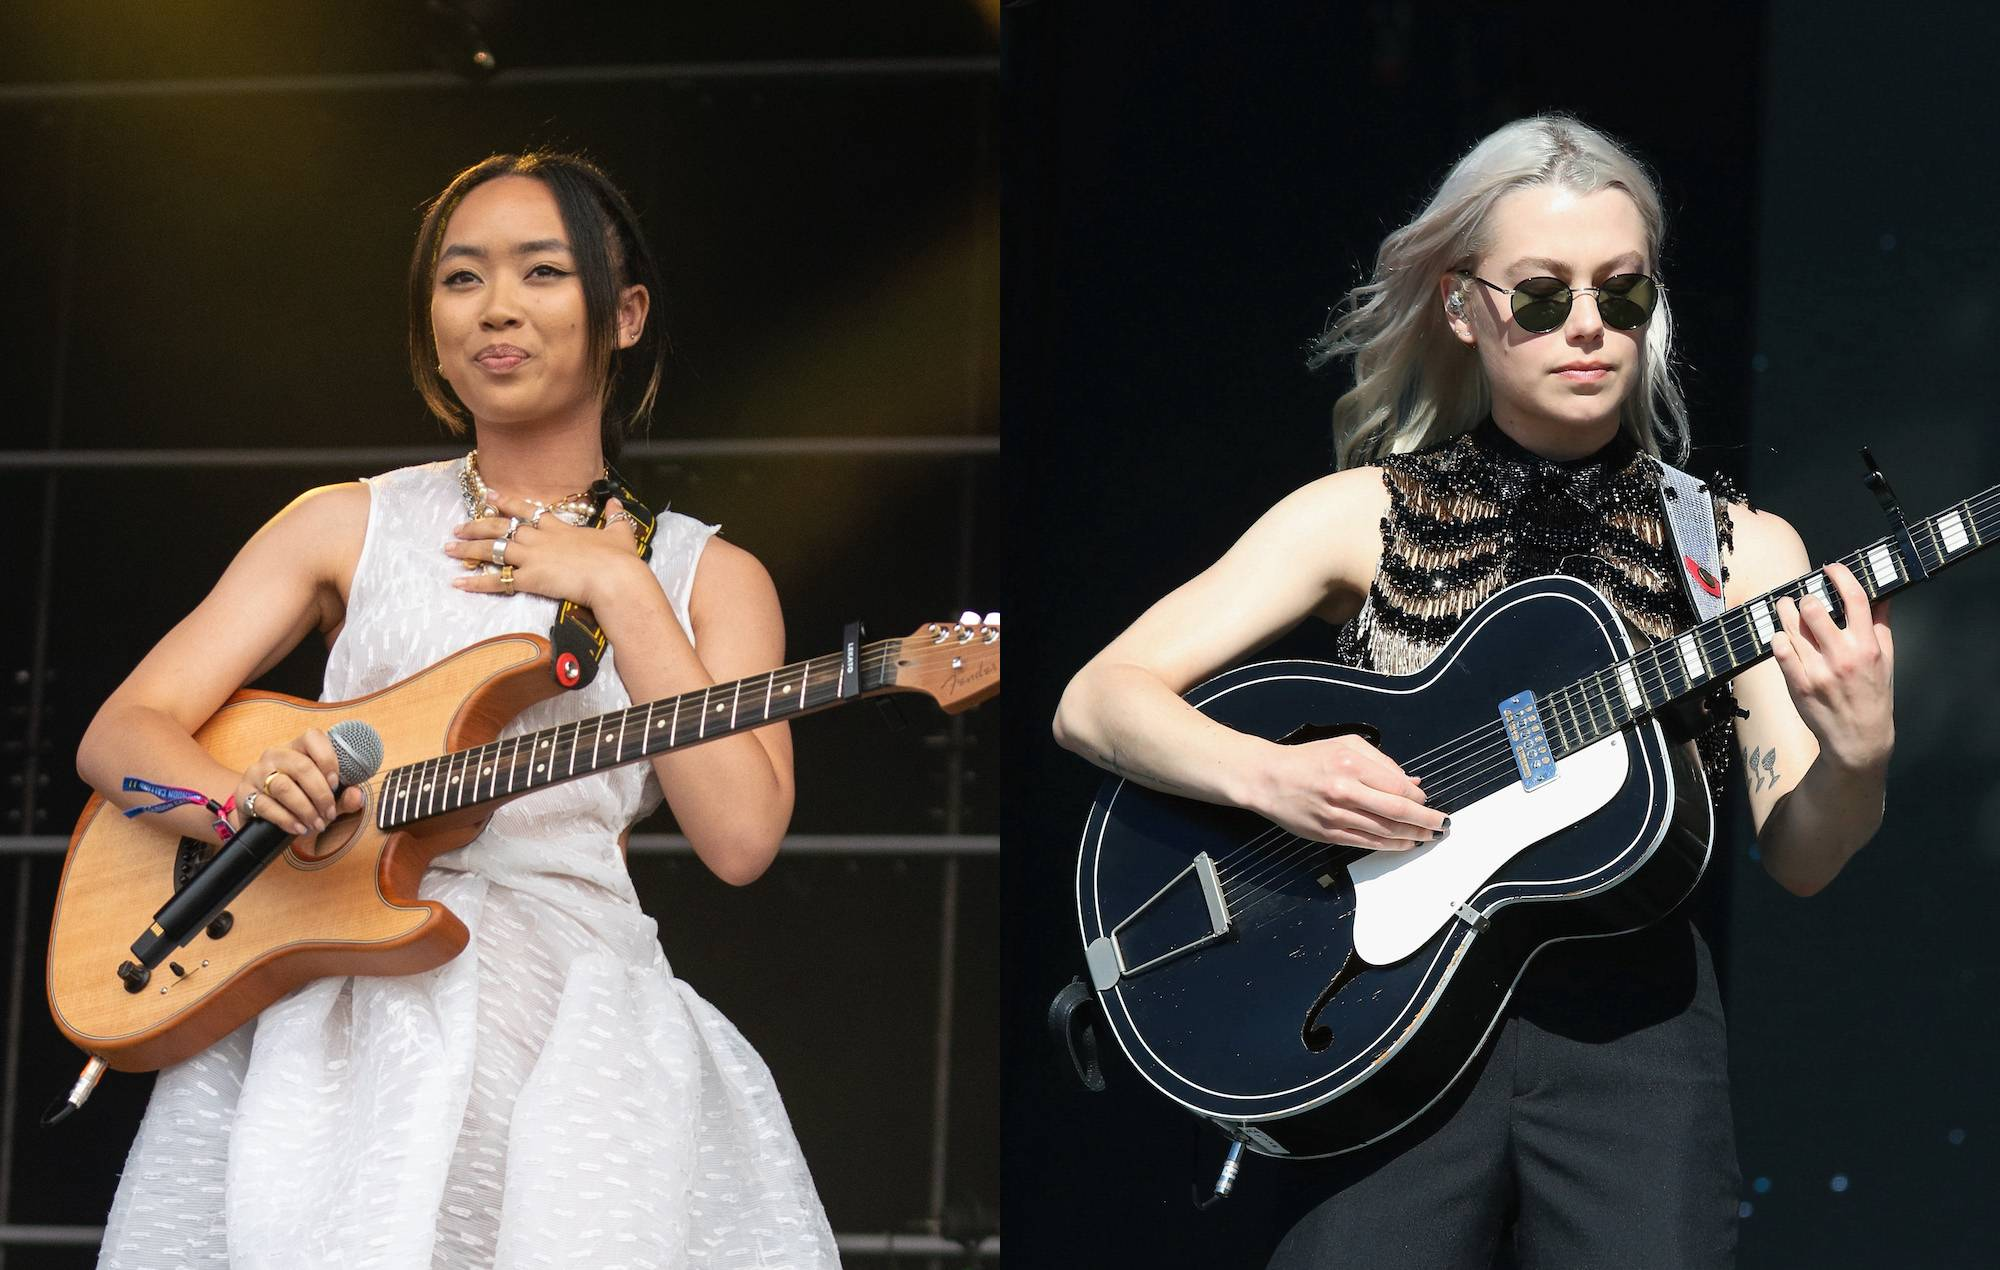 COSMO  Watch Griff cover Phoebe Bridgers' 'Kyoto' for YouTube challenge